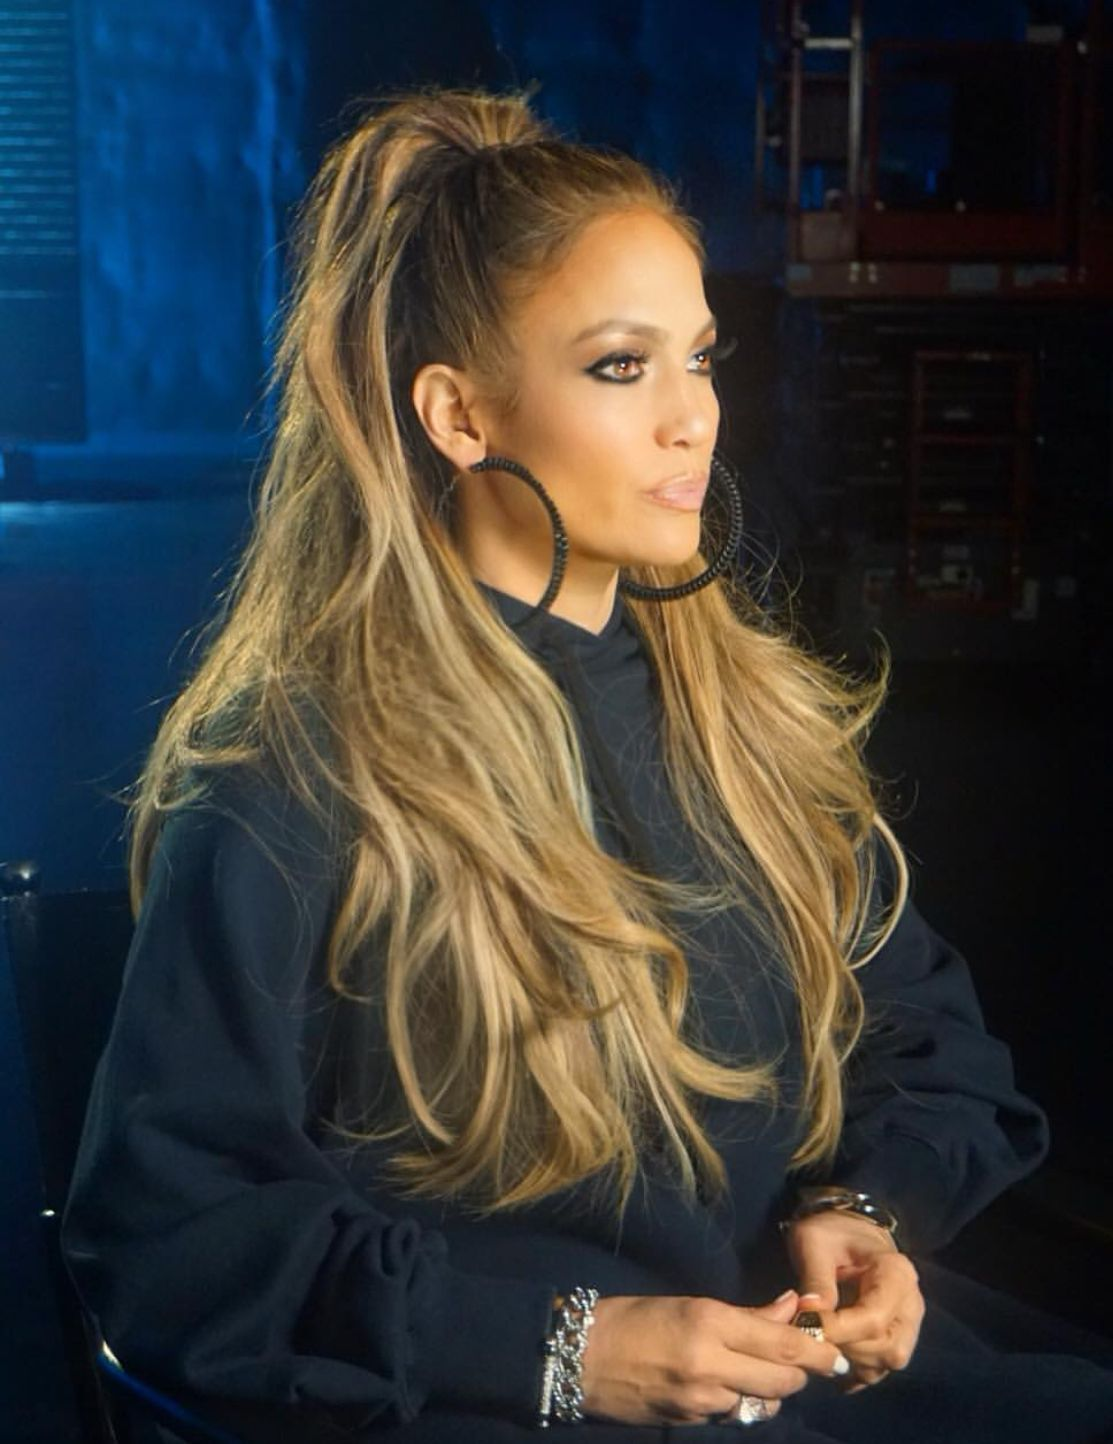 Jennifer Lopez Long Hair Style And Hoop Earrings Hair Styles Jlo Hair Long Hair Styles